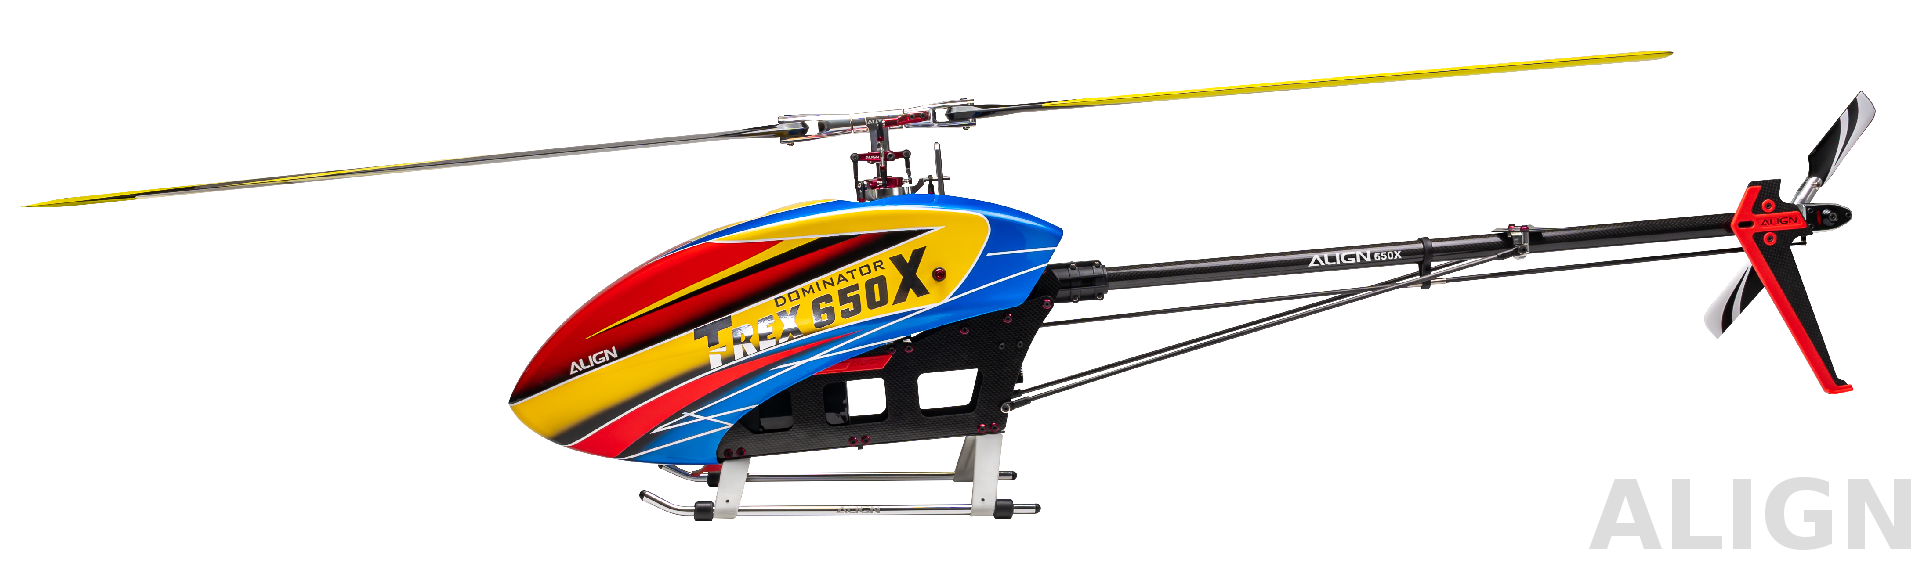 Rc Advanced Helicopter 650 Series Taiwantrade Com